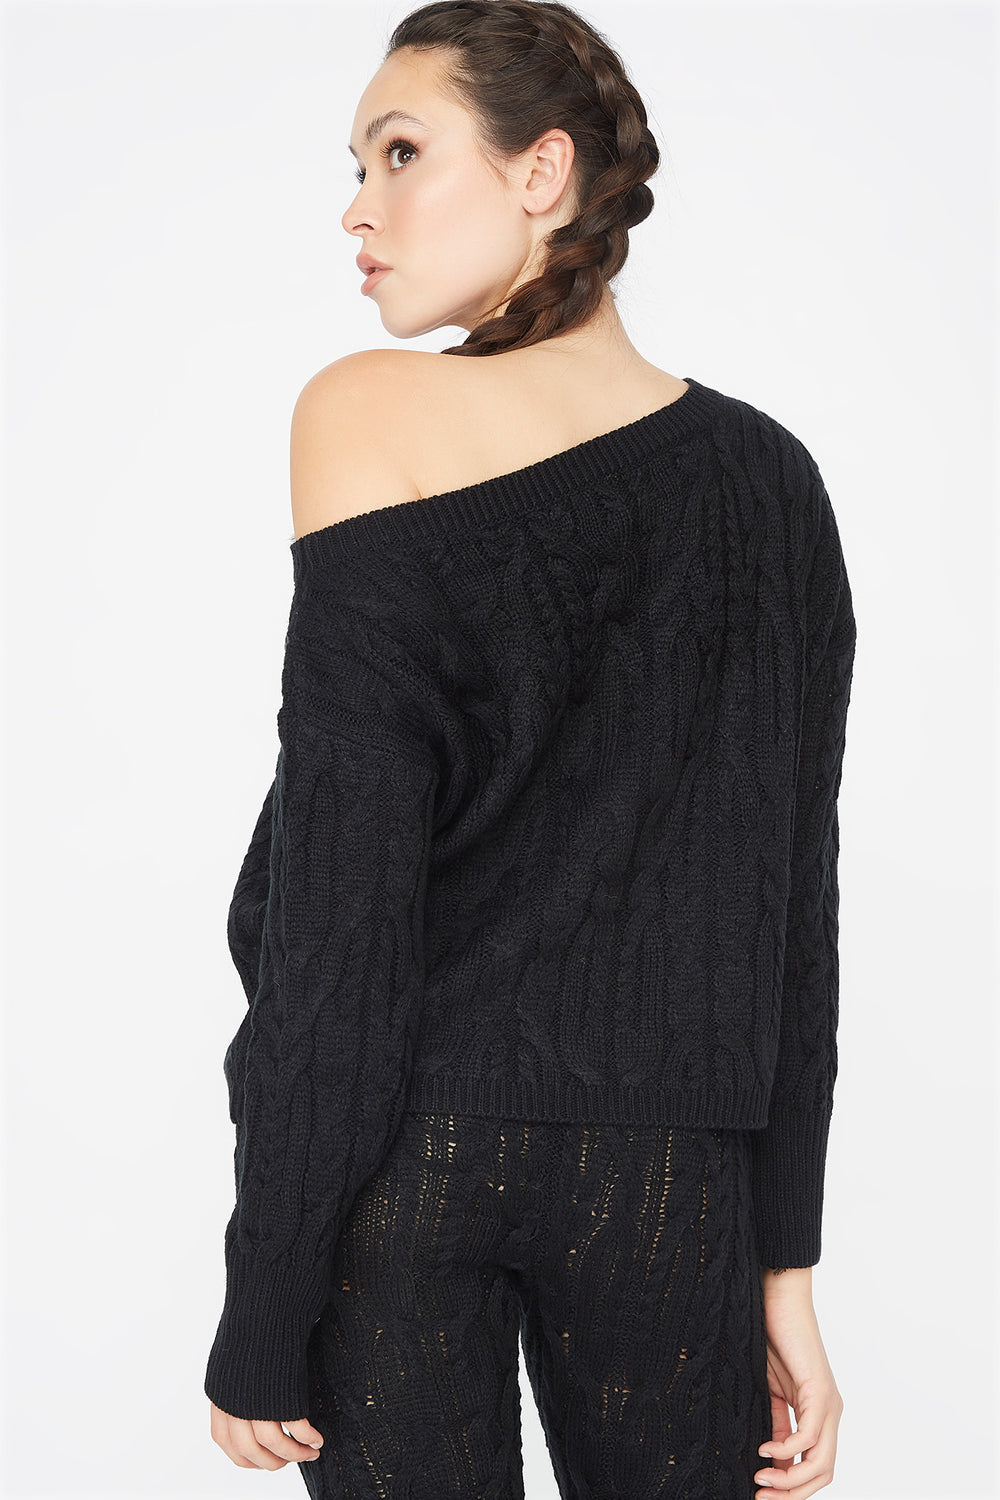 Relaxed Cable Knit Round Neck Sweater Black